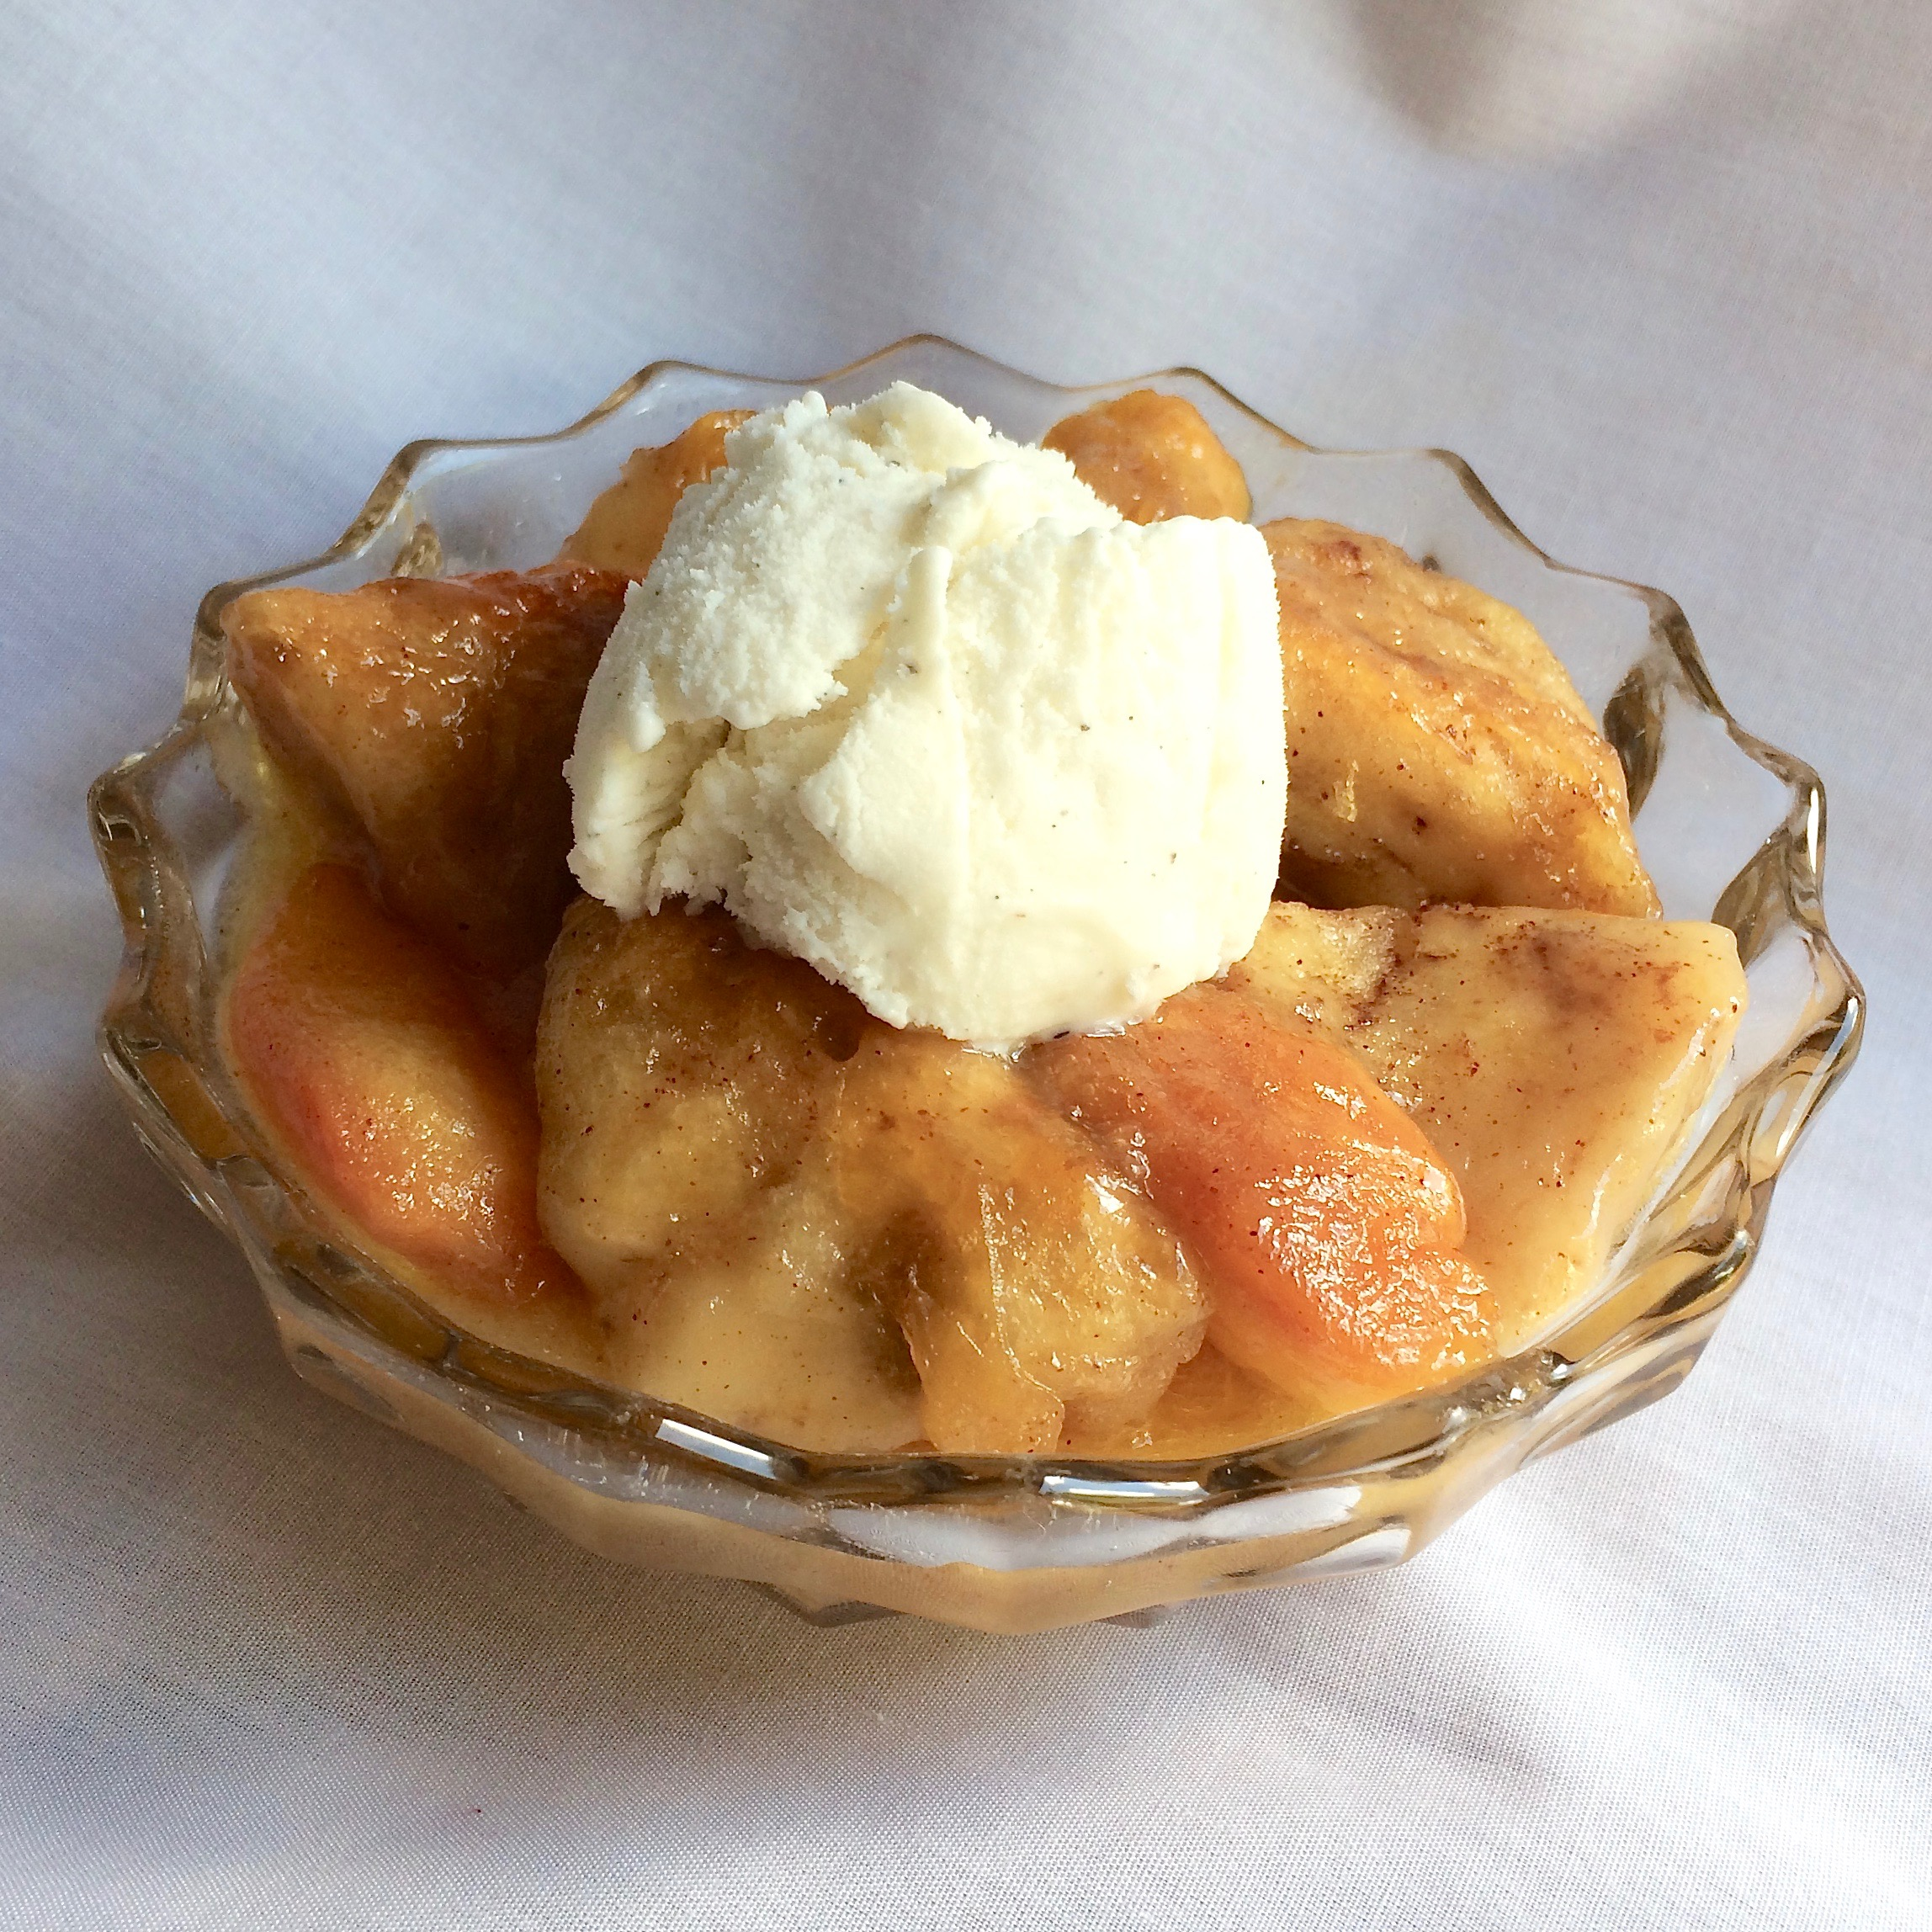 Cinnamon Roll Peach Cobbler